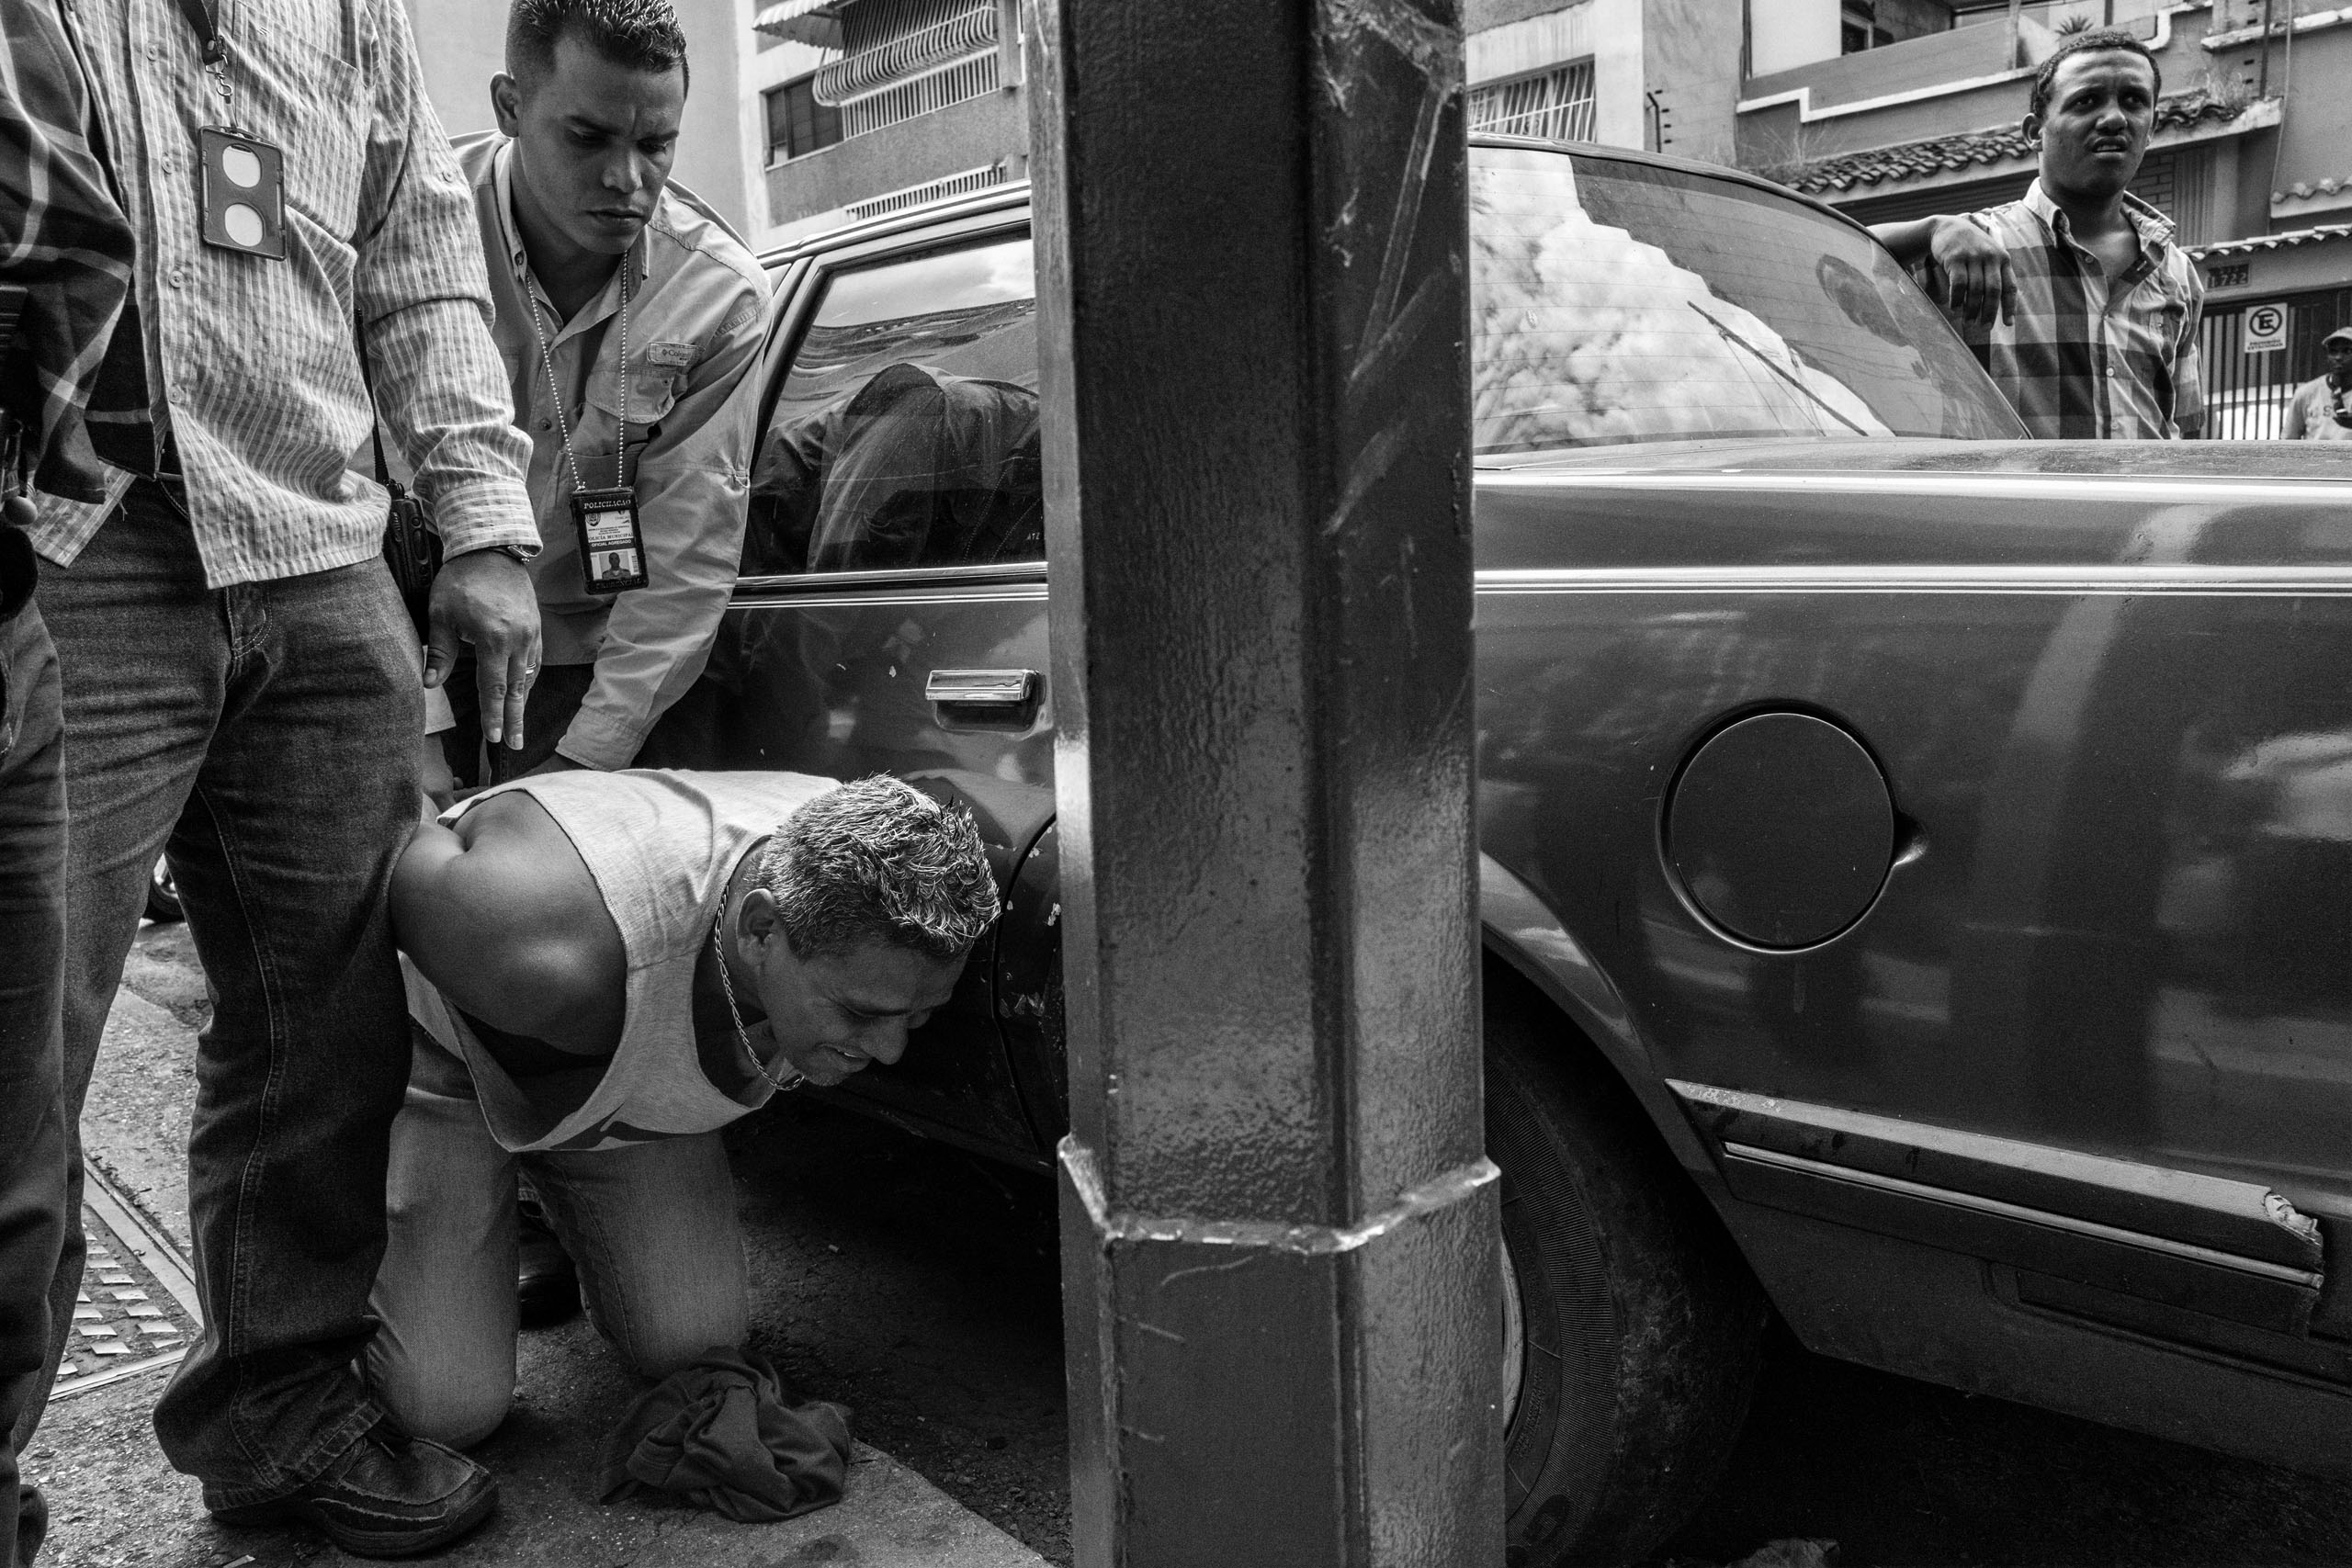 An alleged thief is arrested by police in Caracas, Venezuela. The economic and political crisis in Venezuela has led to increased crime and abuses by police, May 2016.